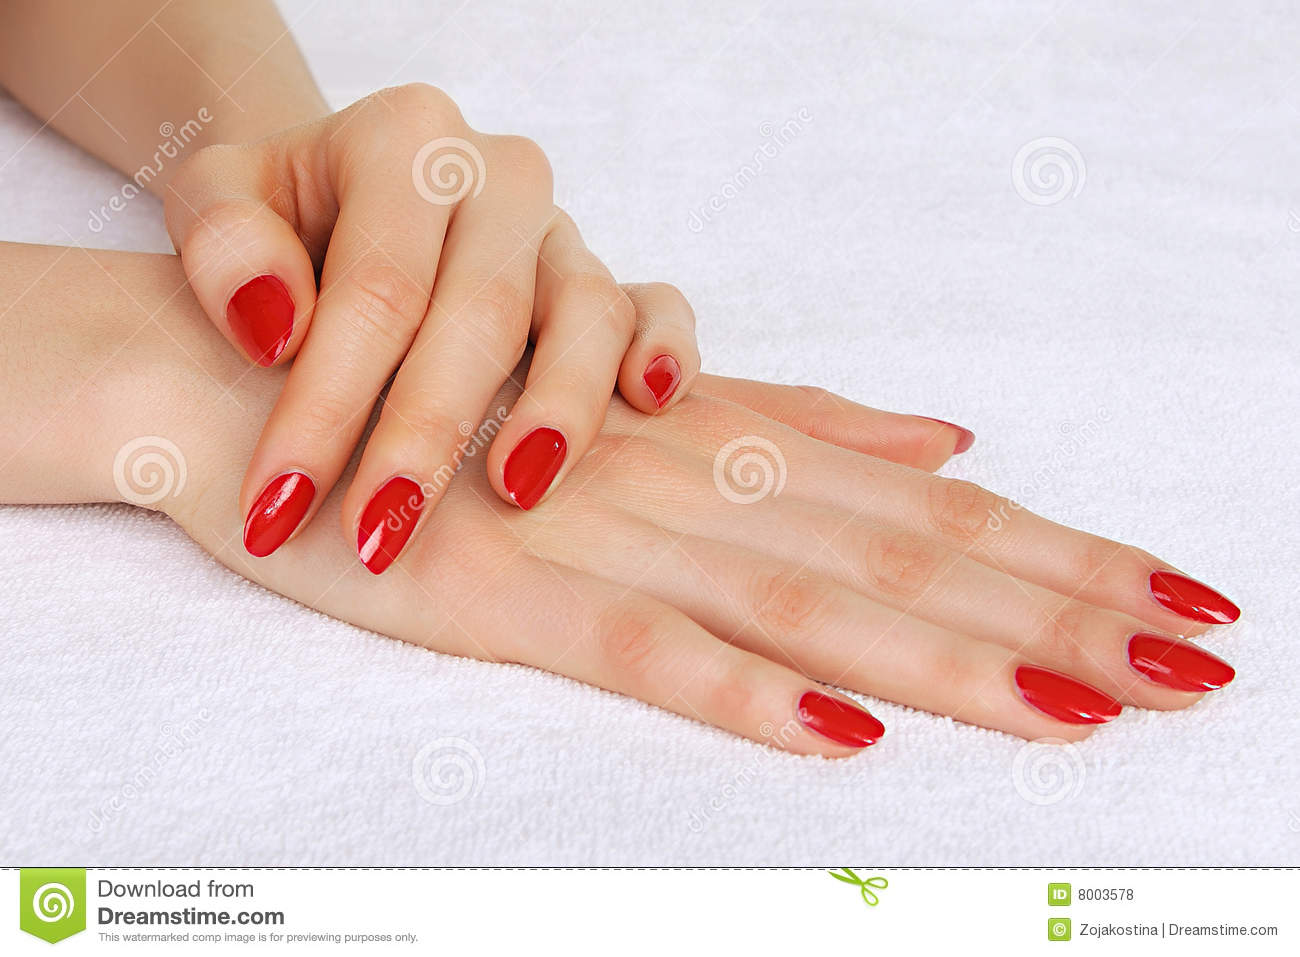 Red manicured woman hands | Stock Photo | Colourbox